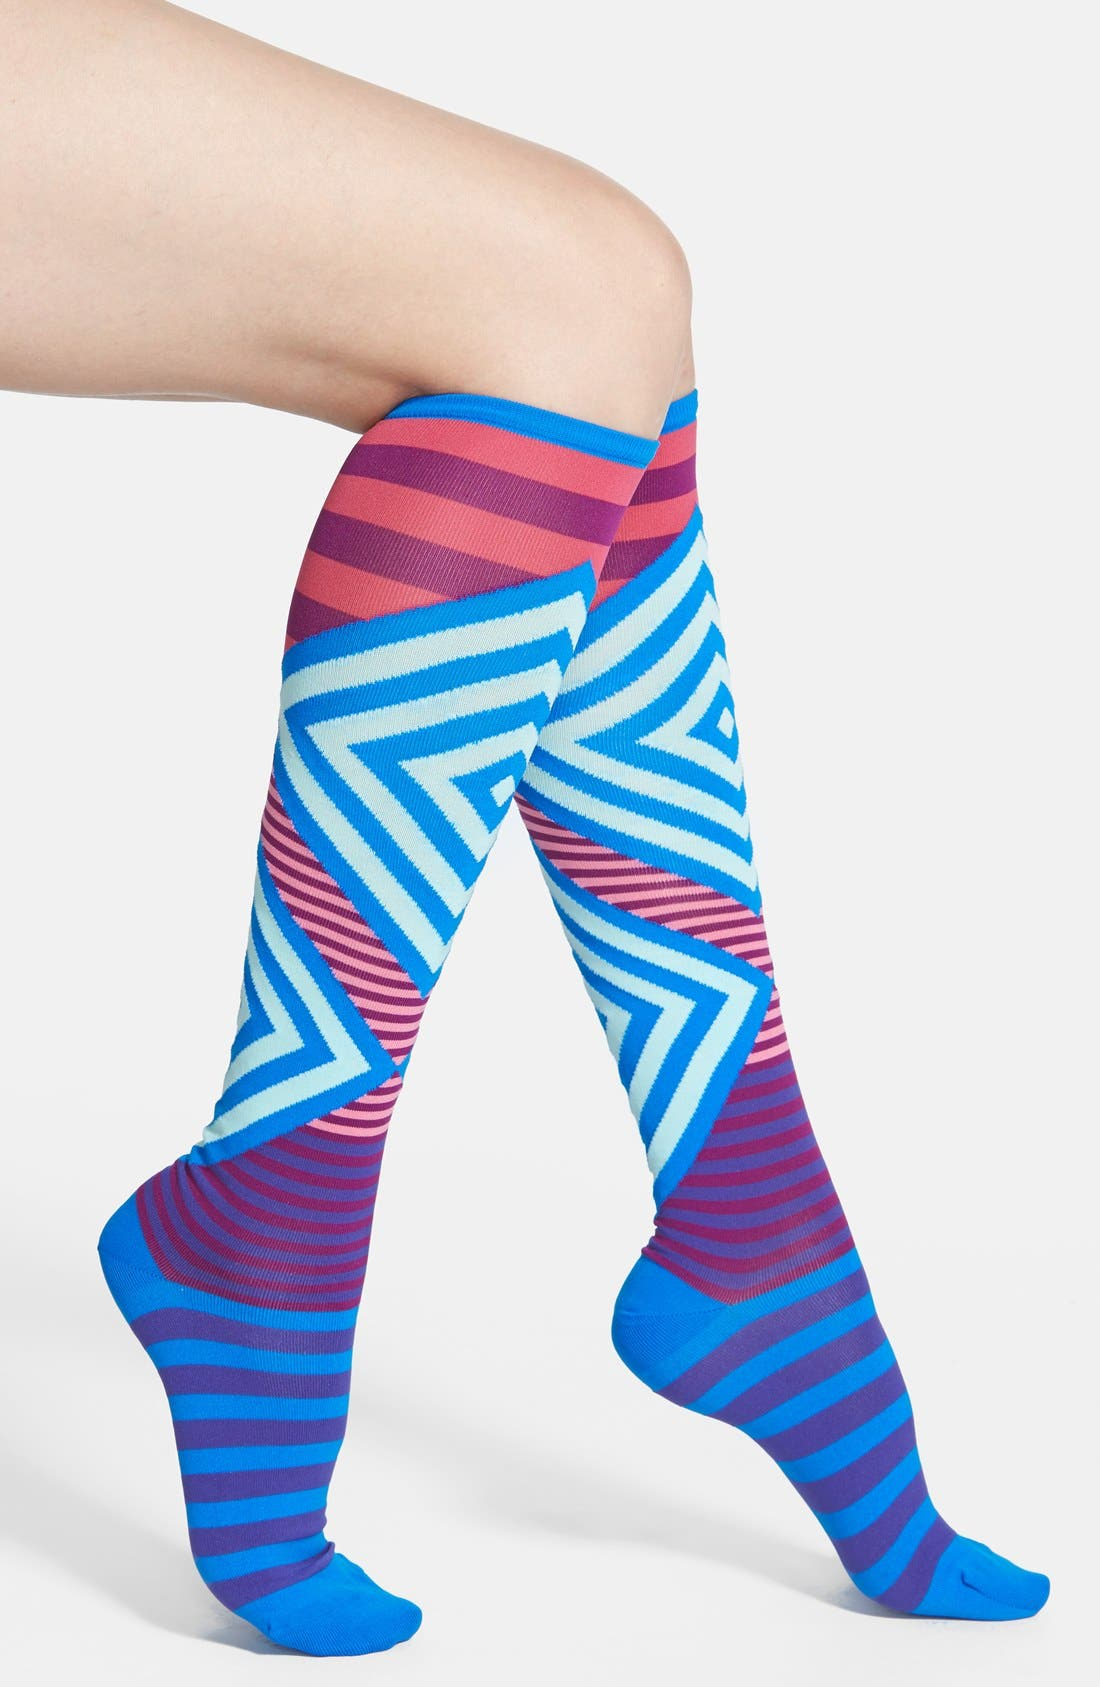 Alternate Image 1 Selected - Hot Sox Mixed Stripe Knee High Socks